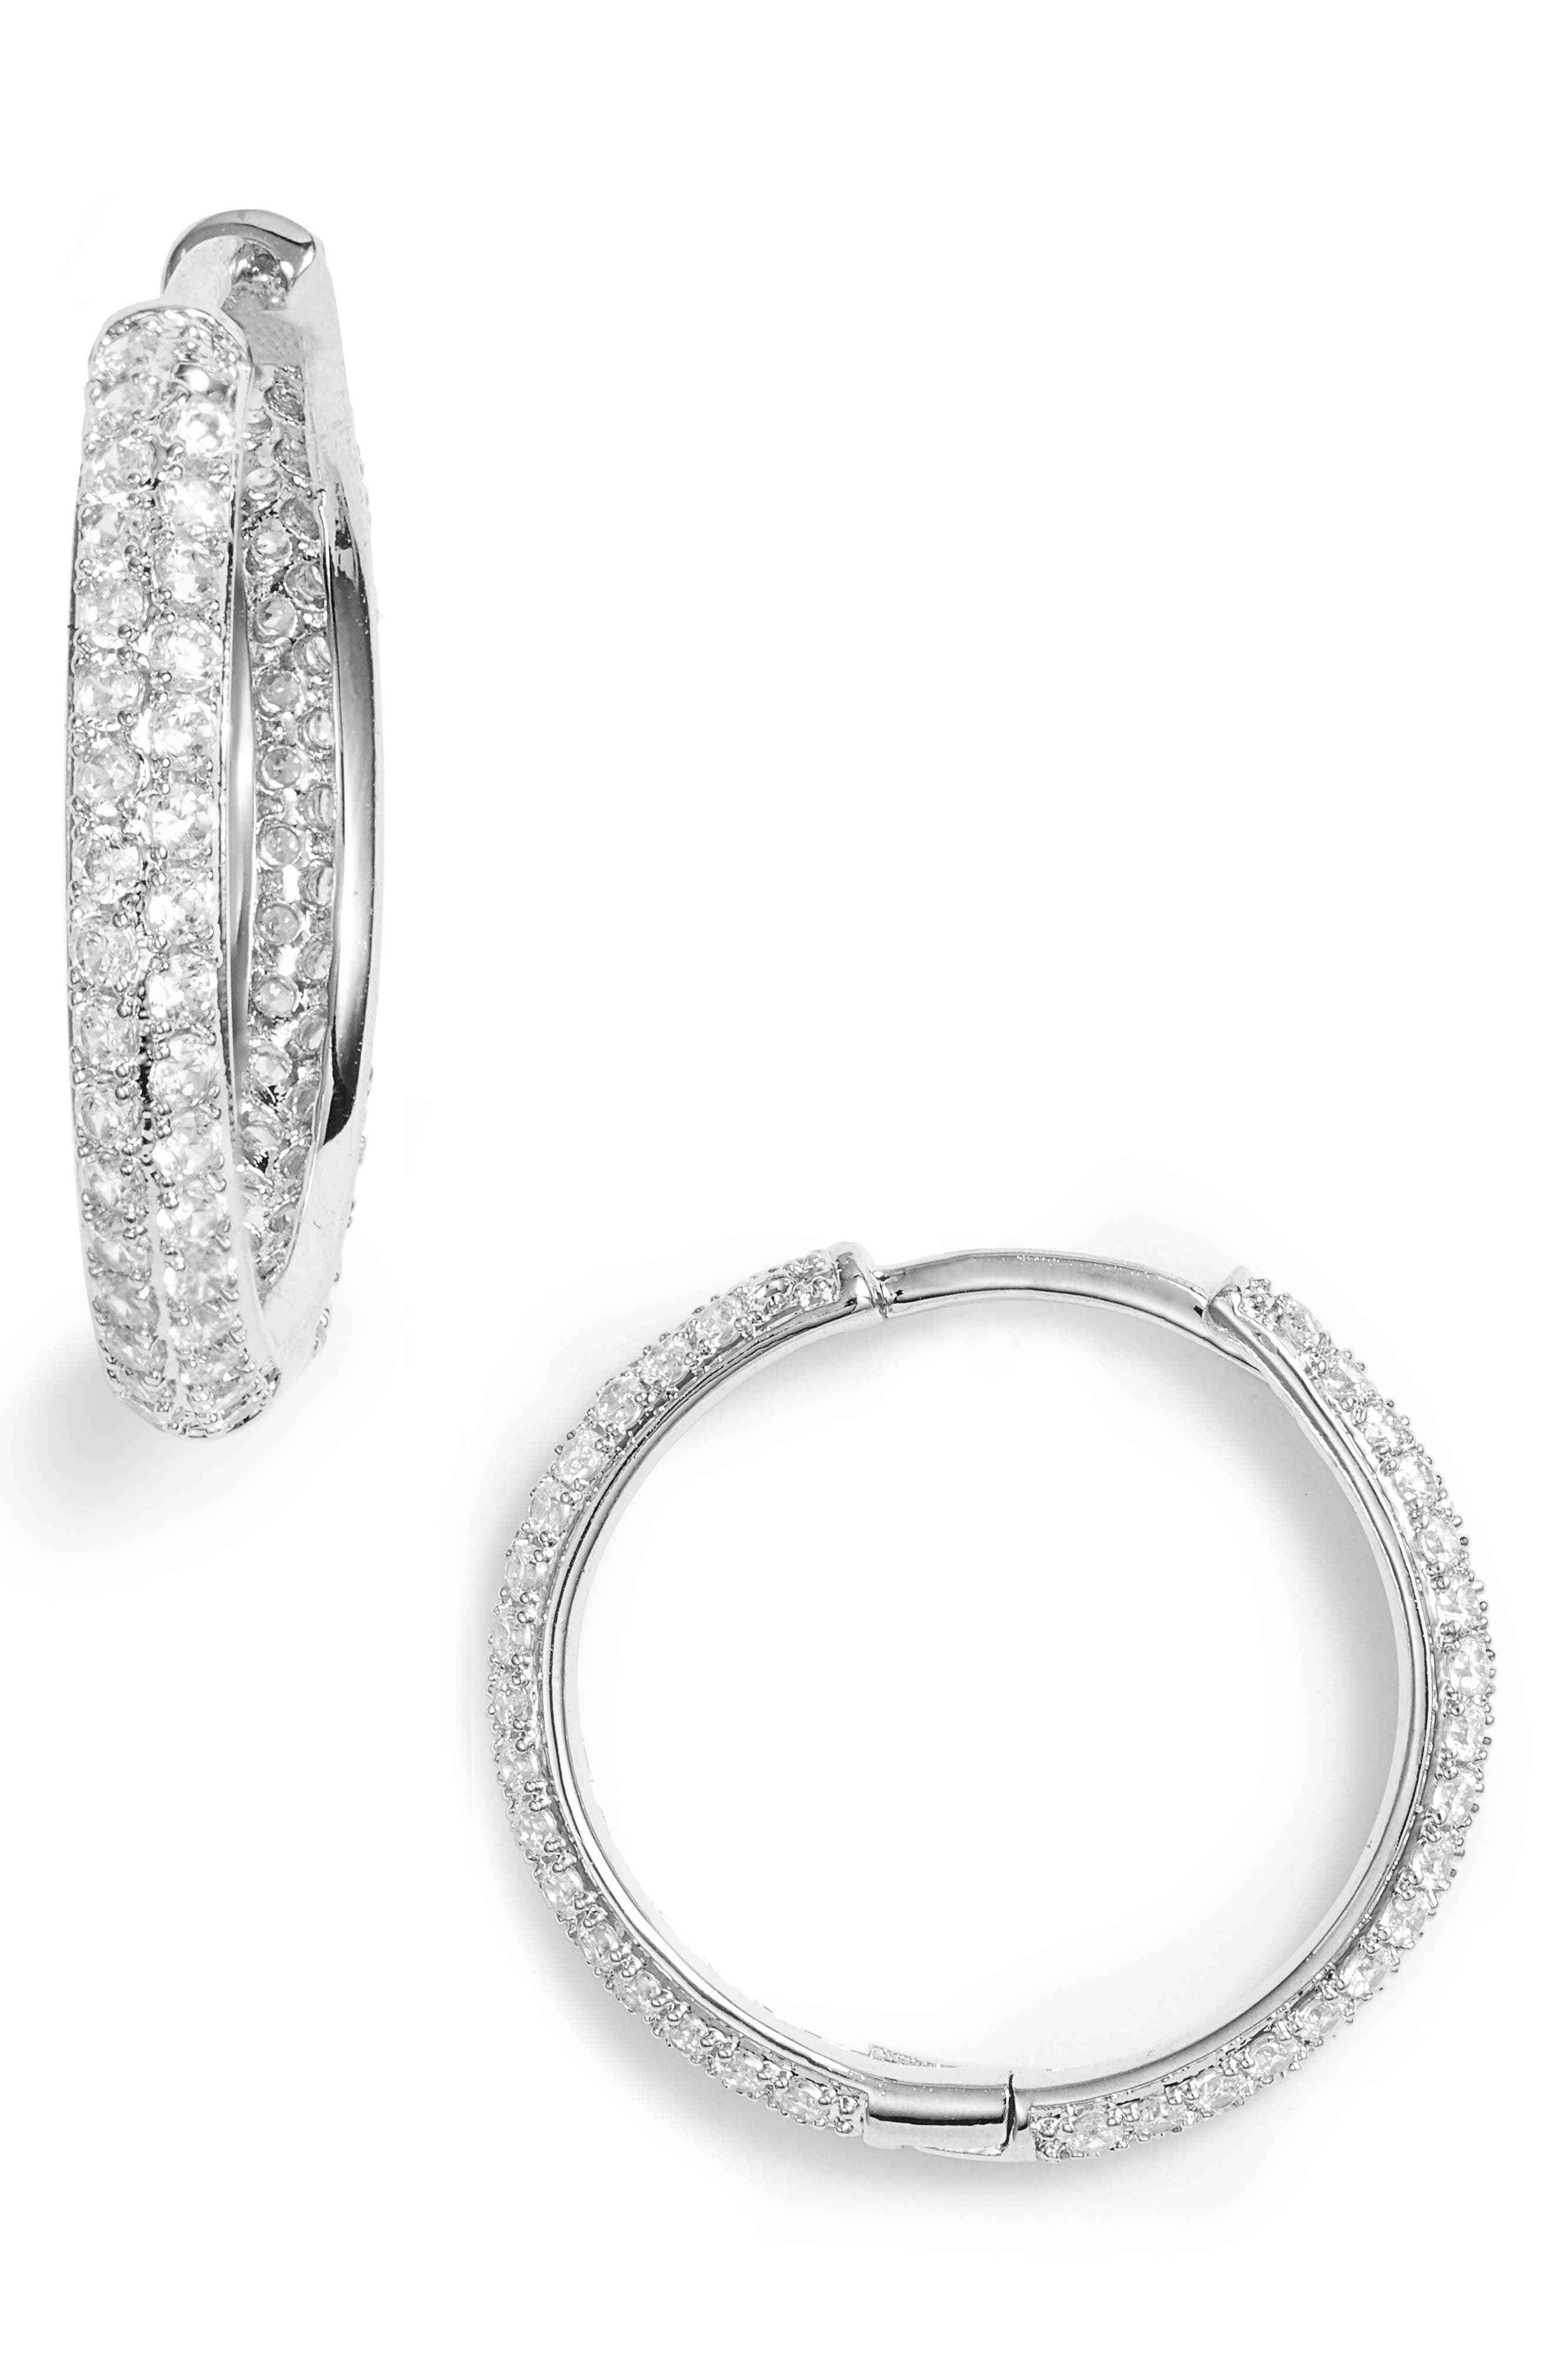 Two rows of pave crystals line glitzy hoops sized for everyday wear. Style Name: Nordstrom Small Pave Hoop Earrings. Style Number: 5571035. Available in stores.